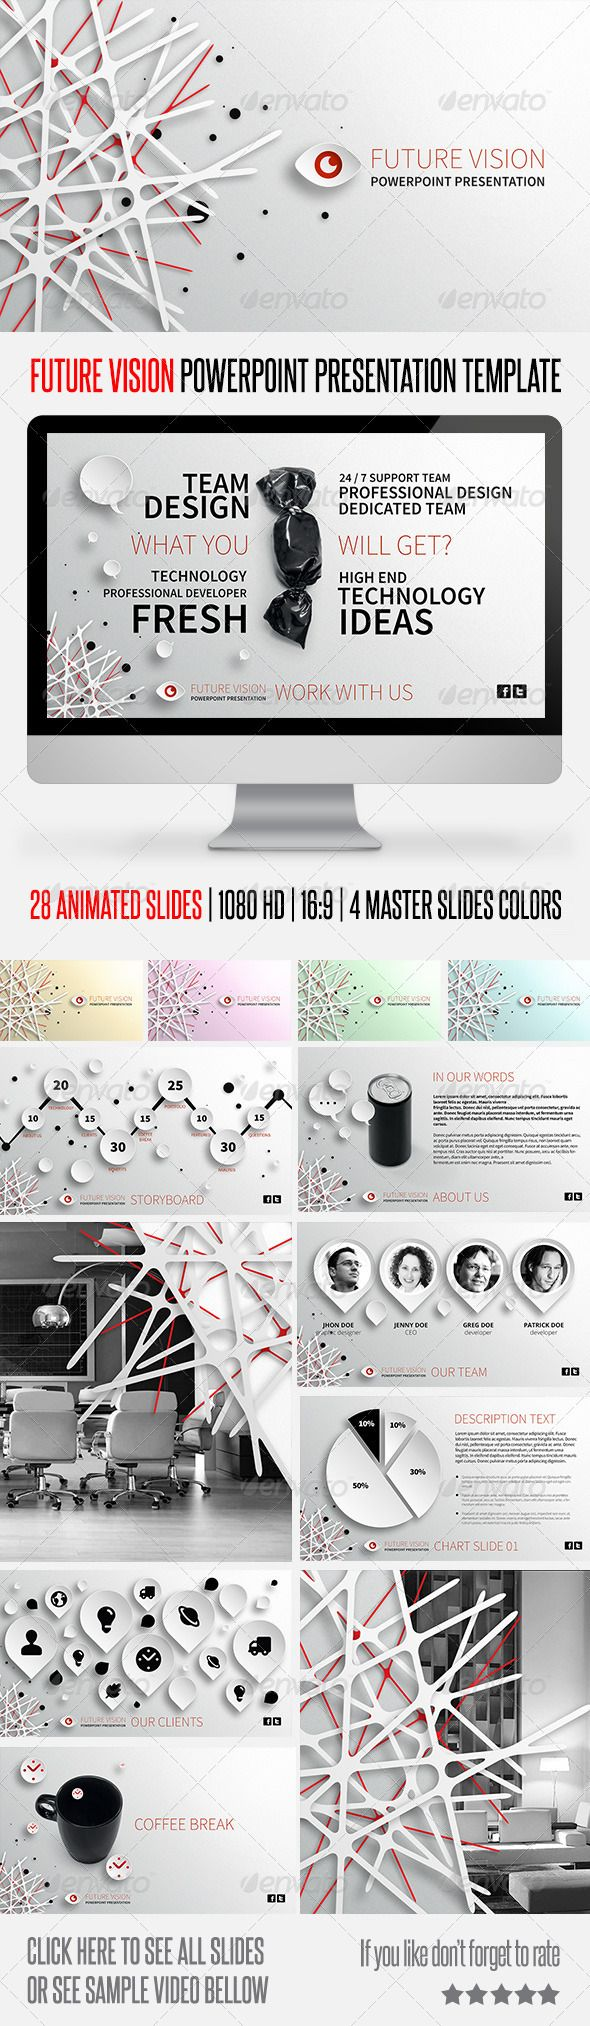 Future Vision Powerpoint Presentation Template by Something Design, via Behance